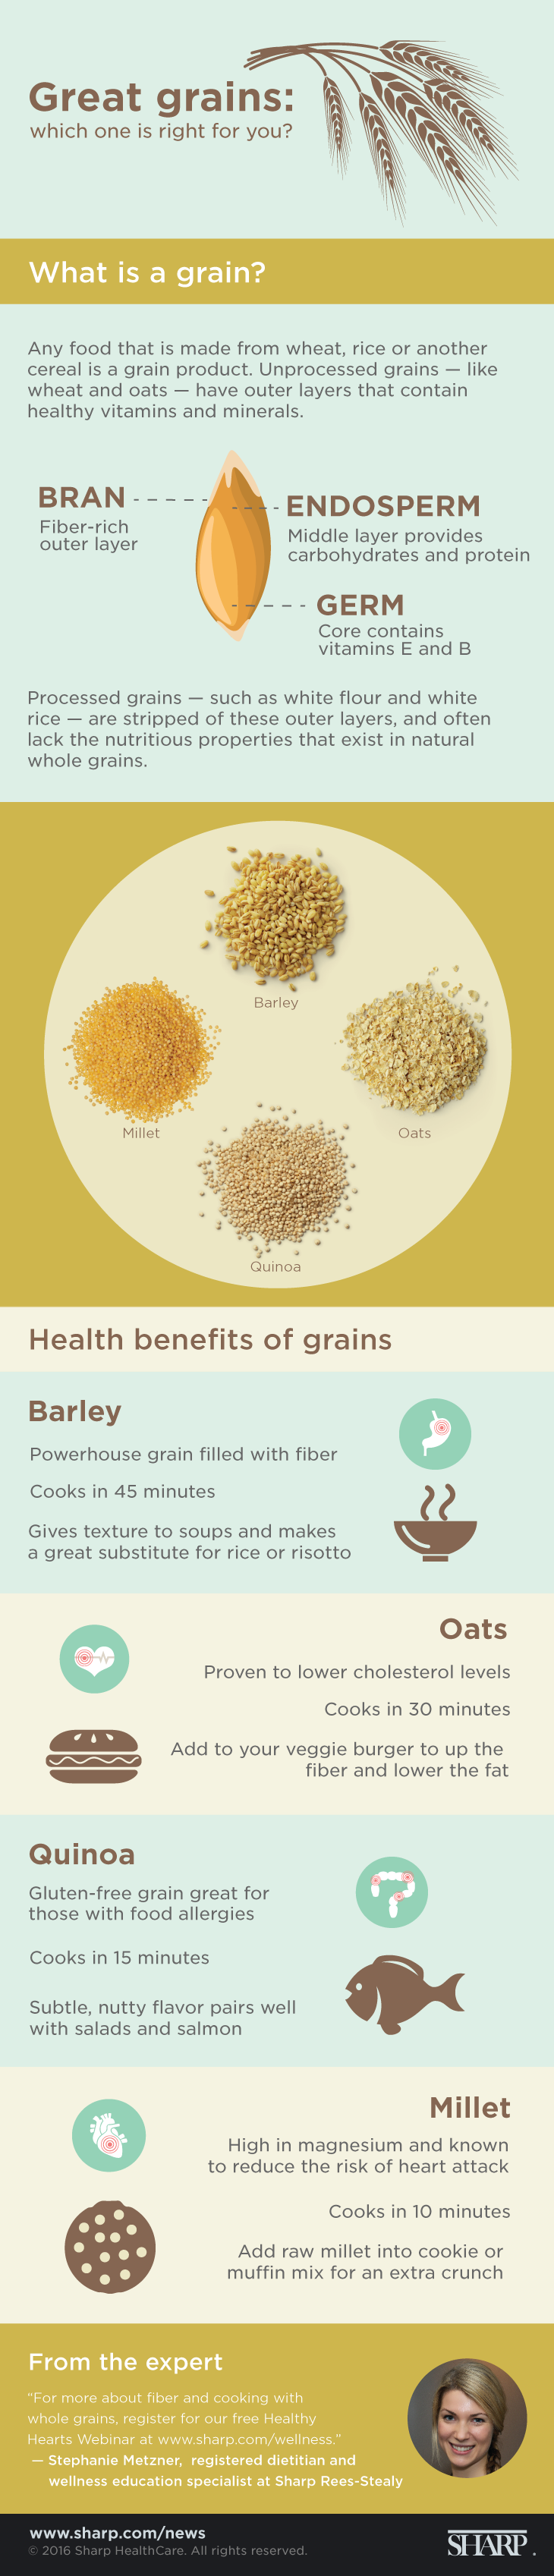 Great Grains (Infographic)